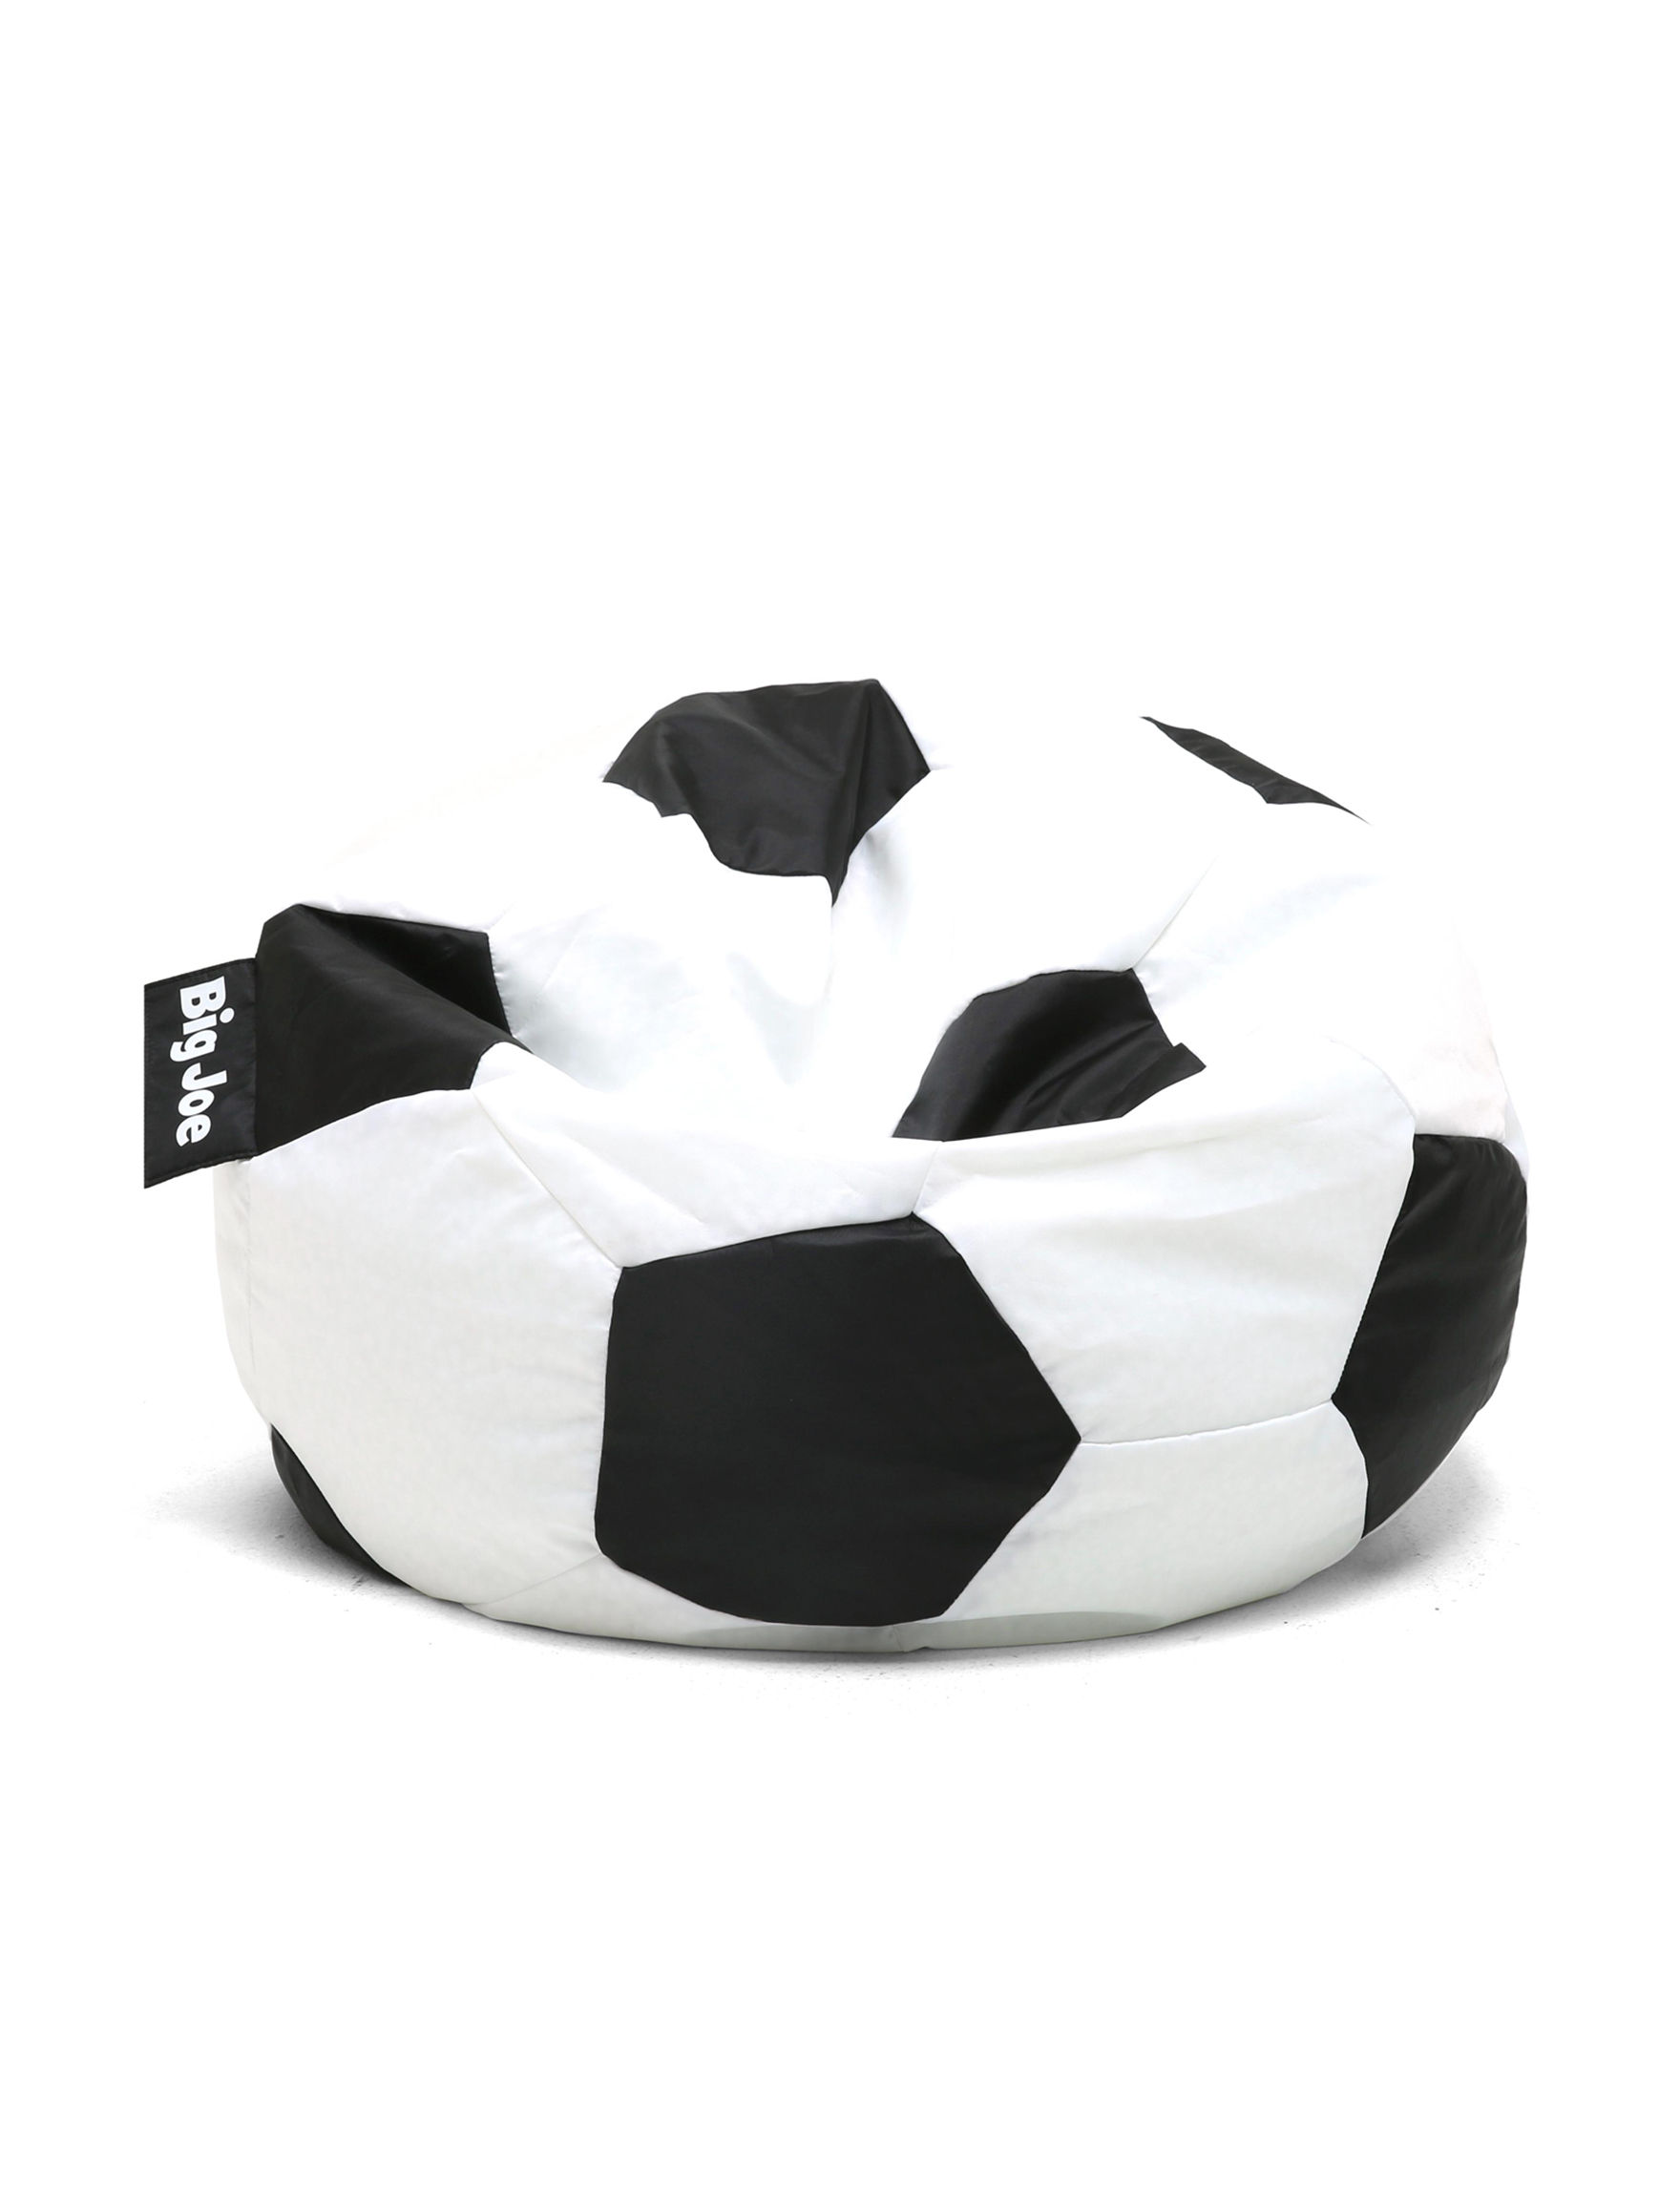 Brilliant Big Joe Soccer Bean Bag Chair Stage Stores Inzonedesignstudio Interior Chair Design Inzonedesignstudiocom